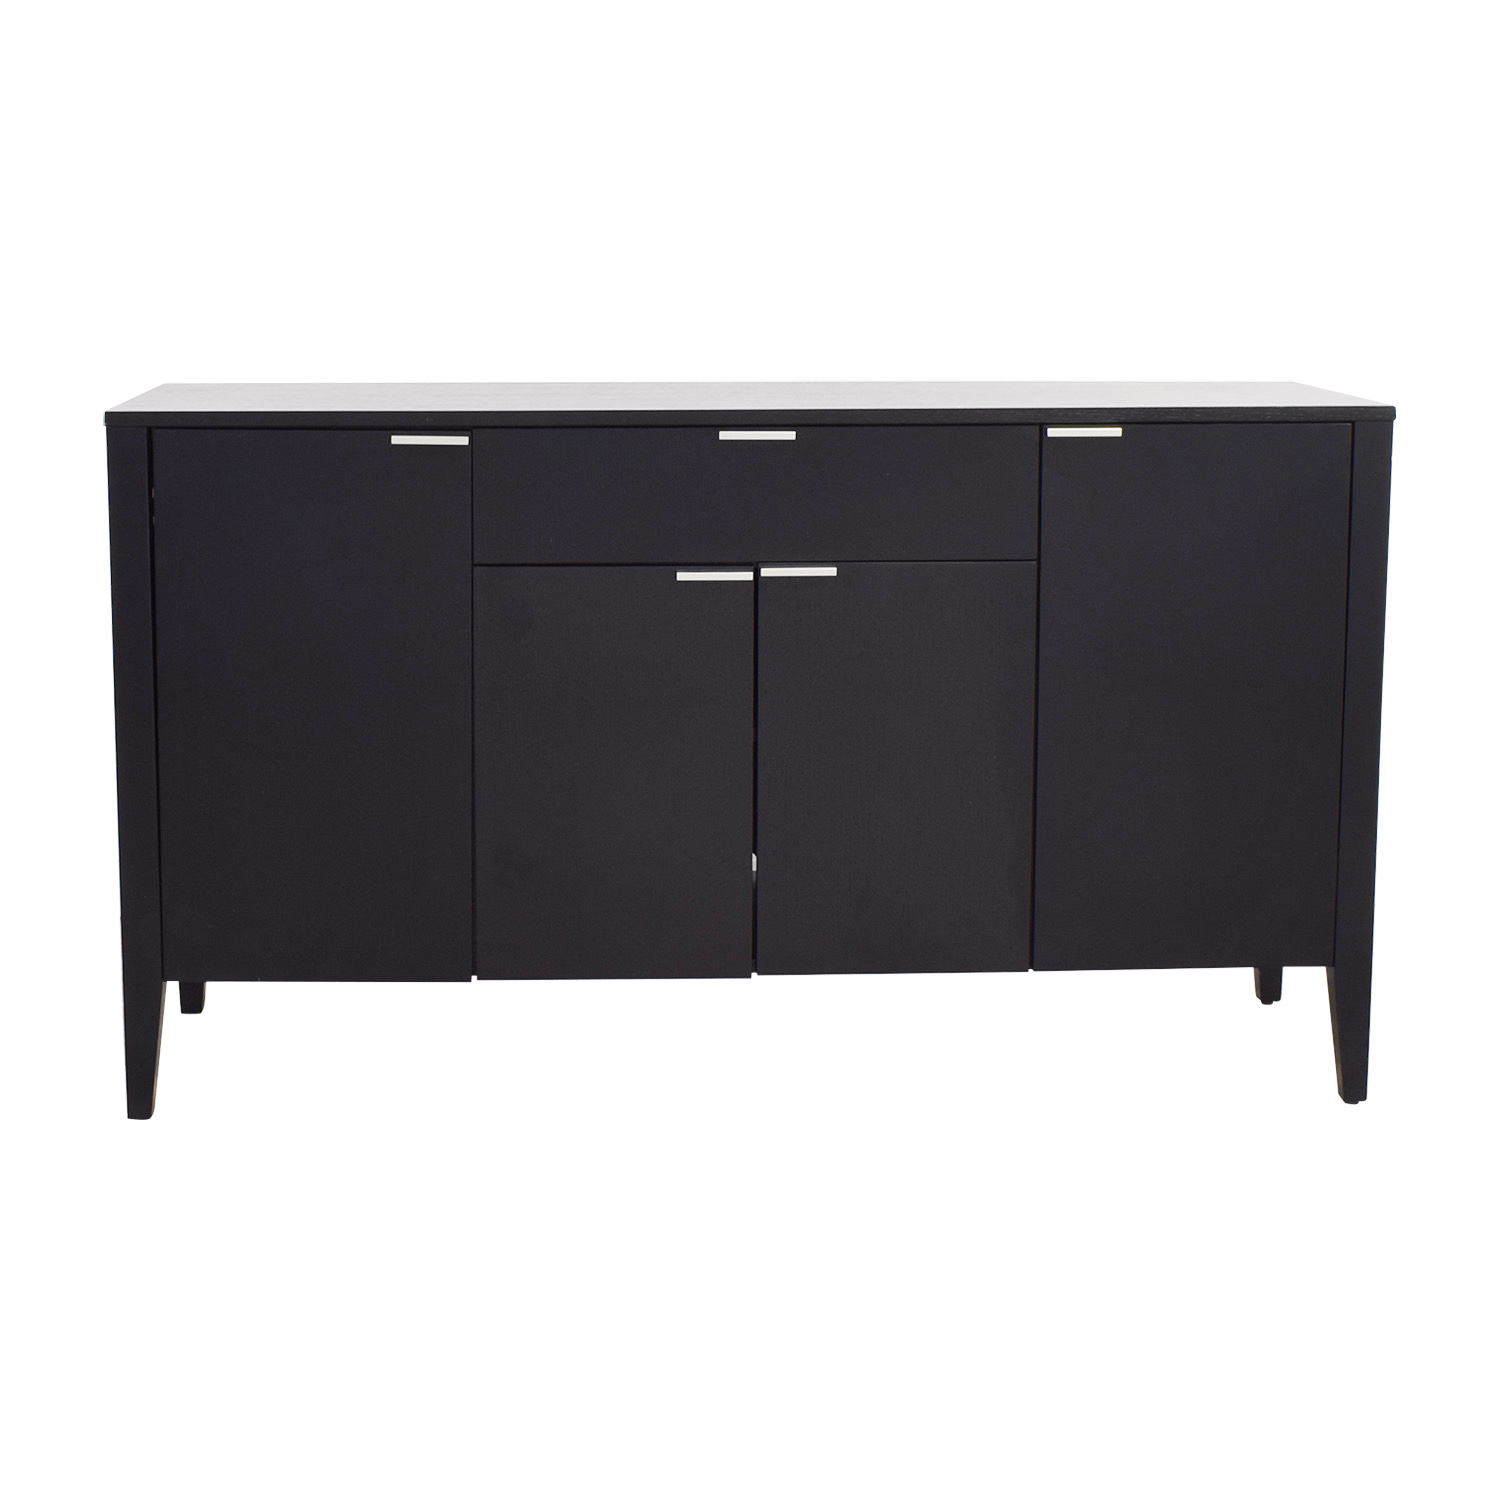 buy Crate & Barrel Crate & Barrel Media Storage Cabinet online